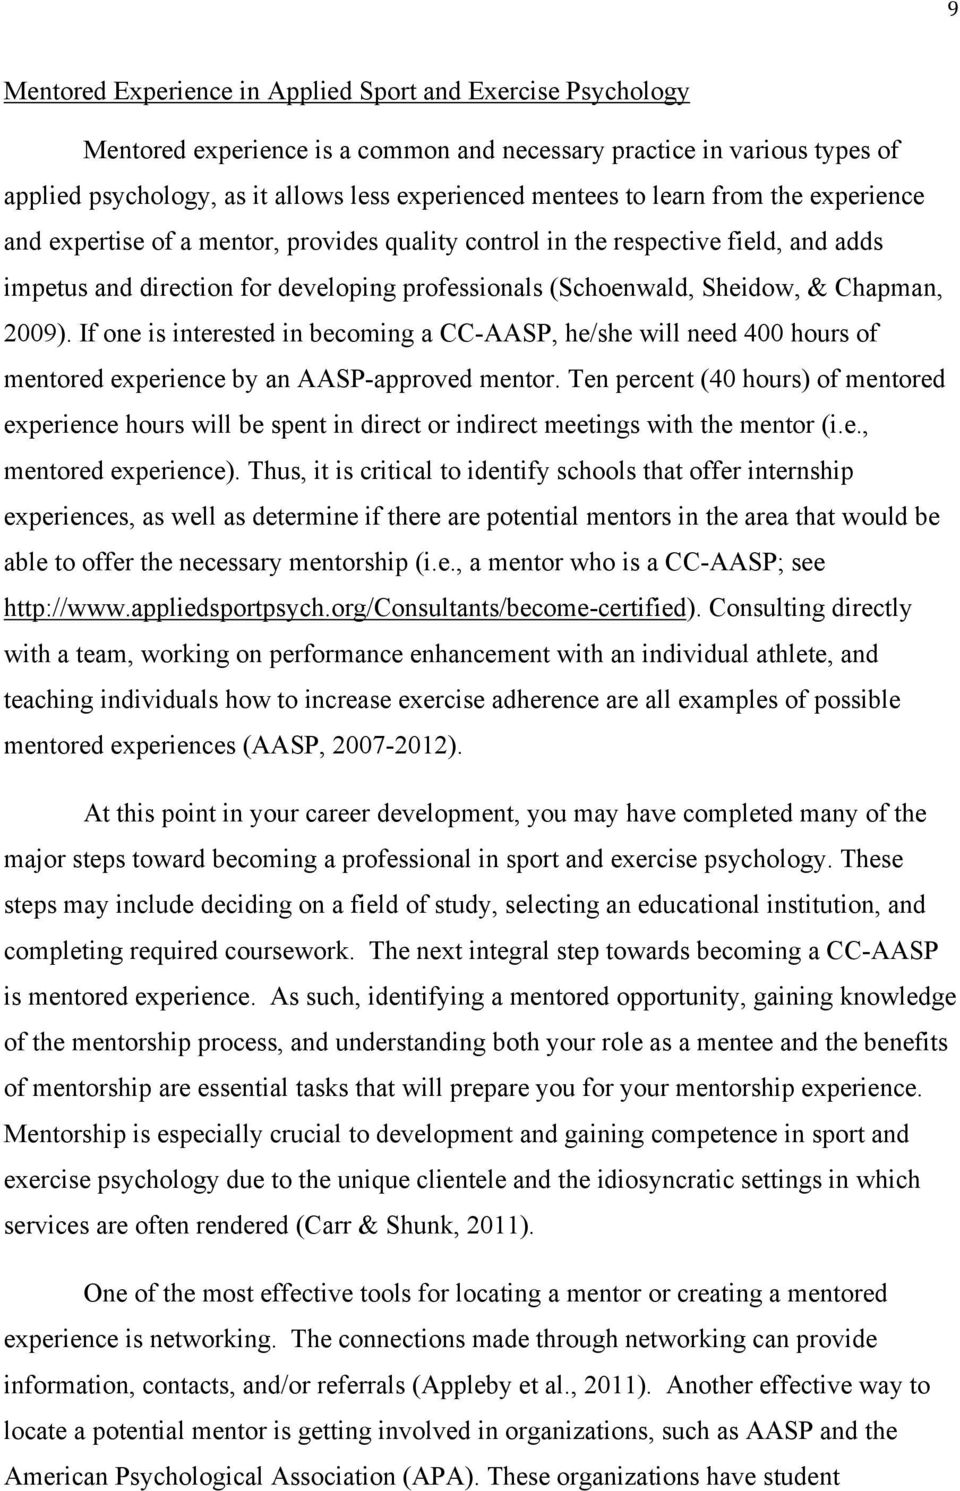 2009). If one is interested in becoming a CC-AASP, he/she will need 400 hours of mentored experience by an AASP-approved mentor.